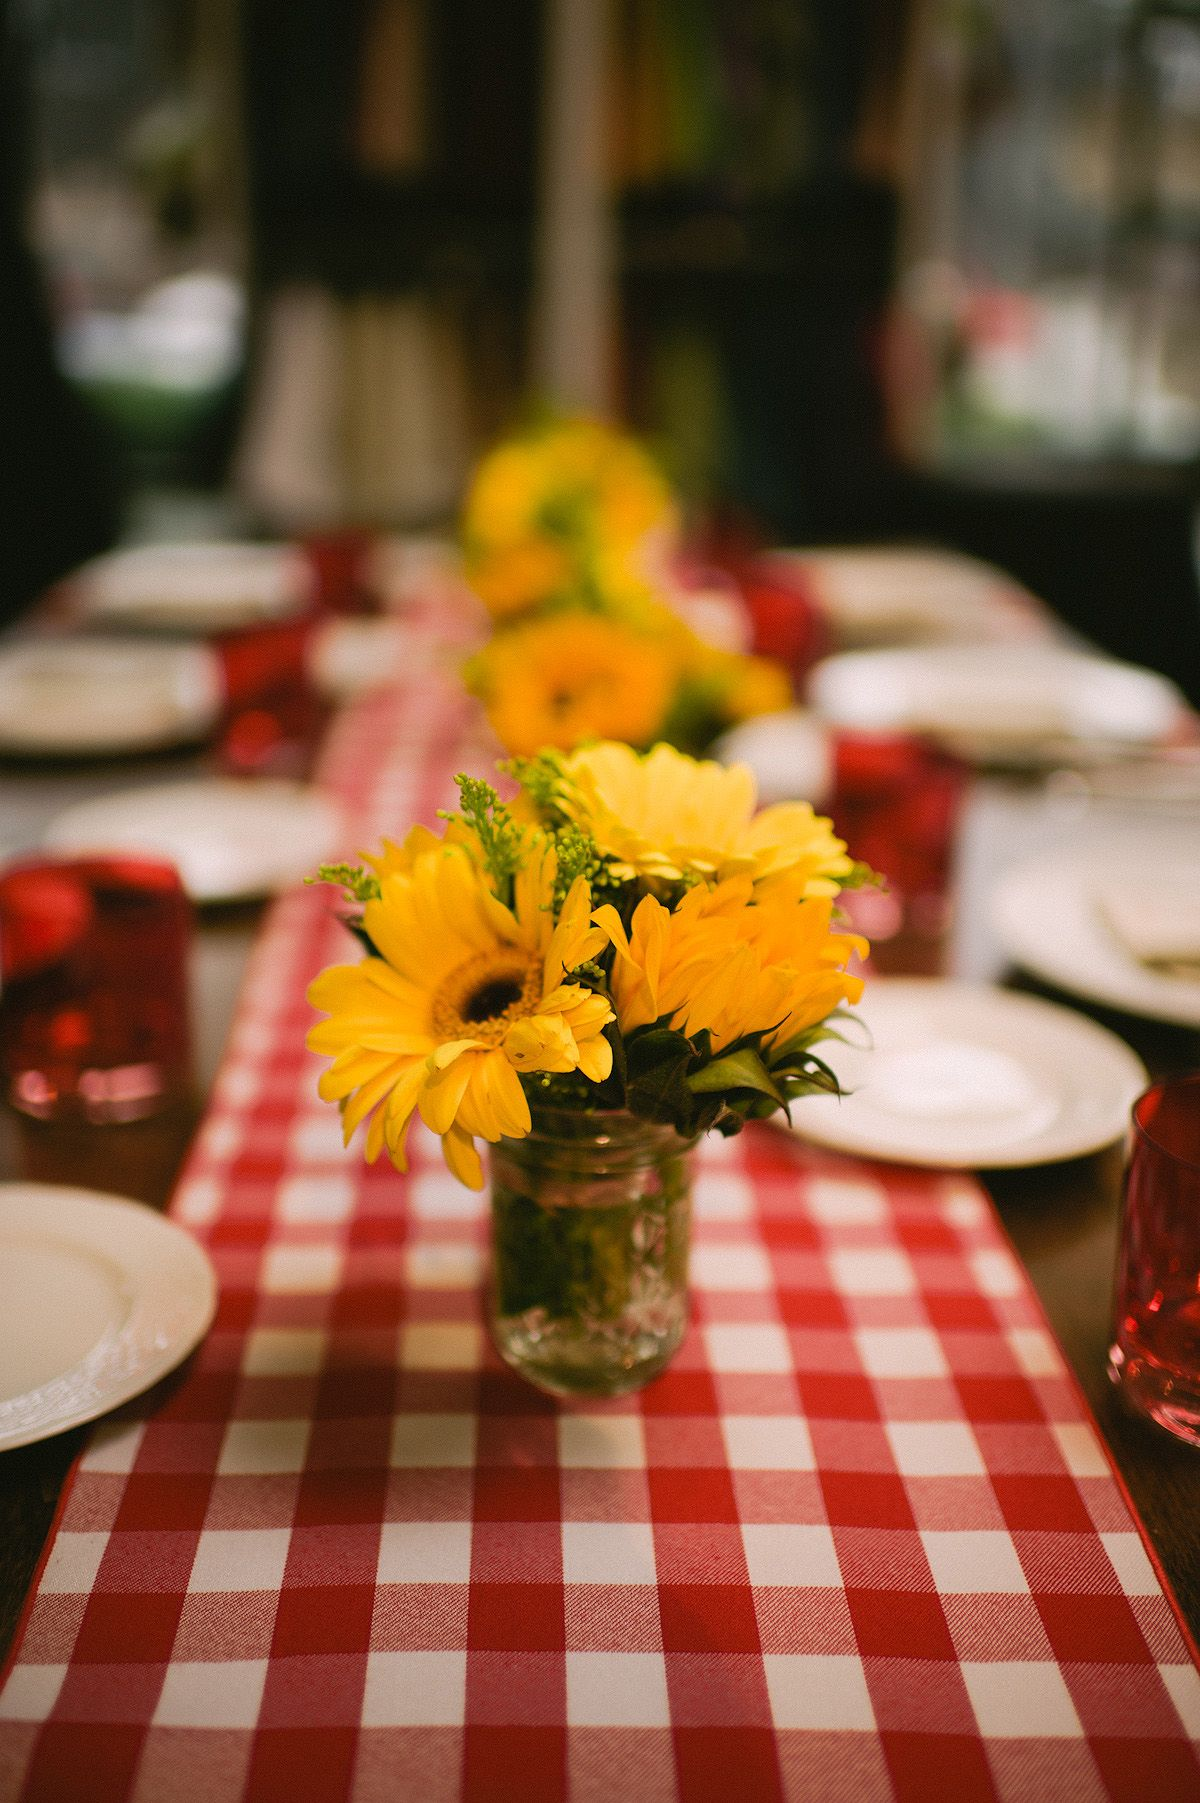 Wedding / Event Tablescape Rustic Country Farm Table